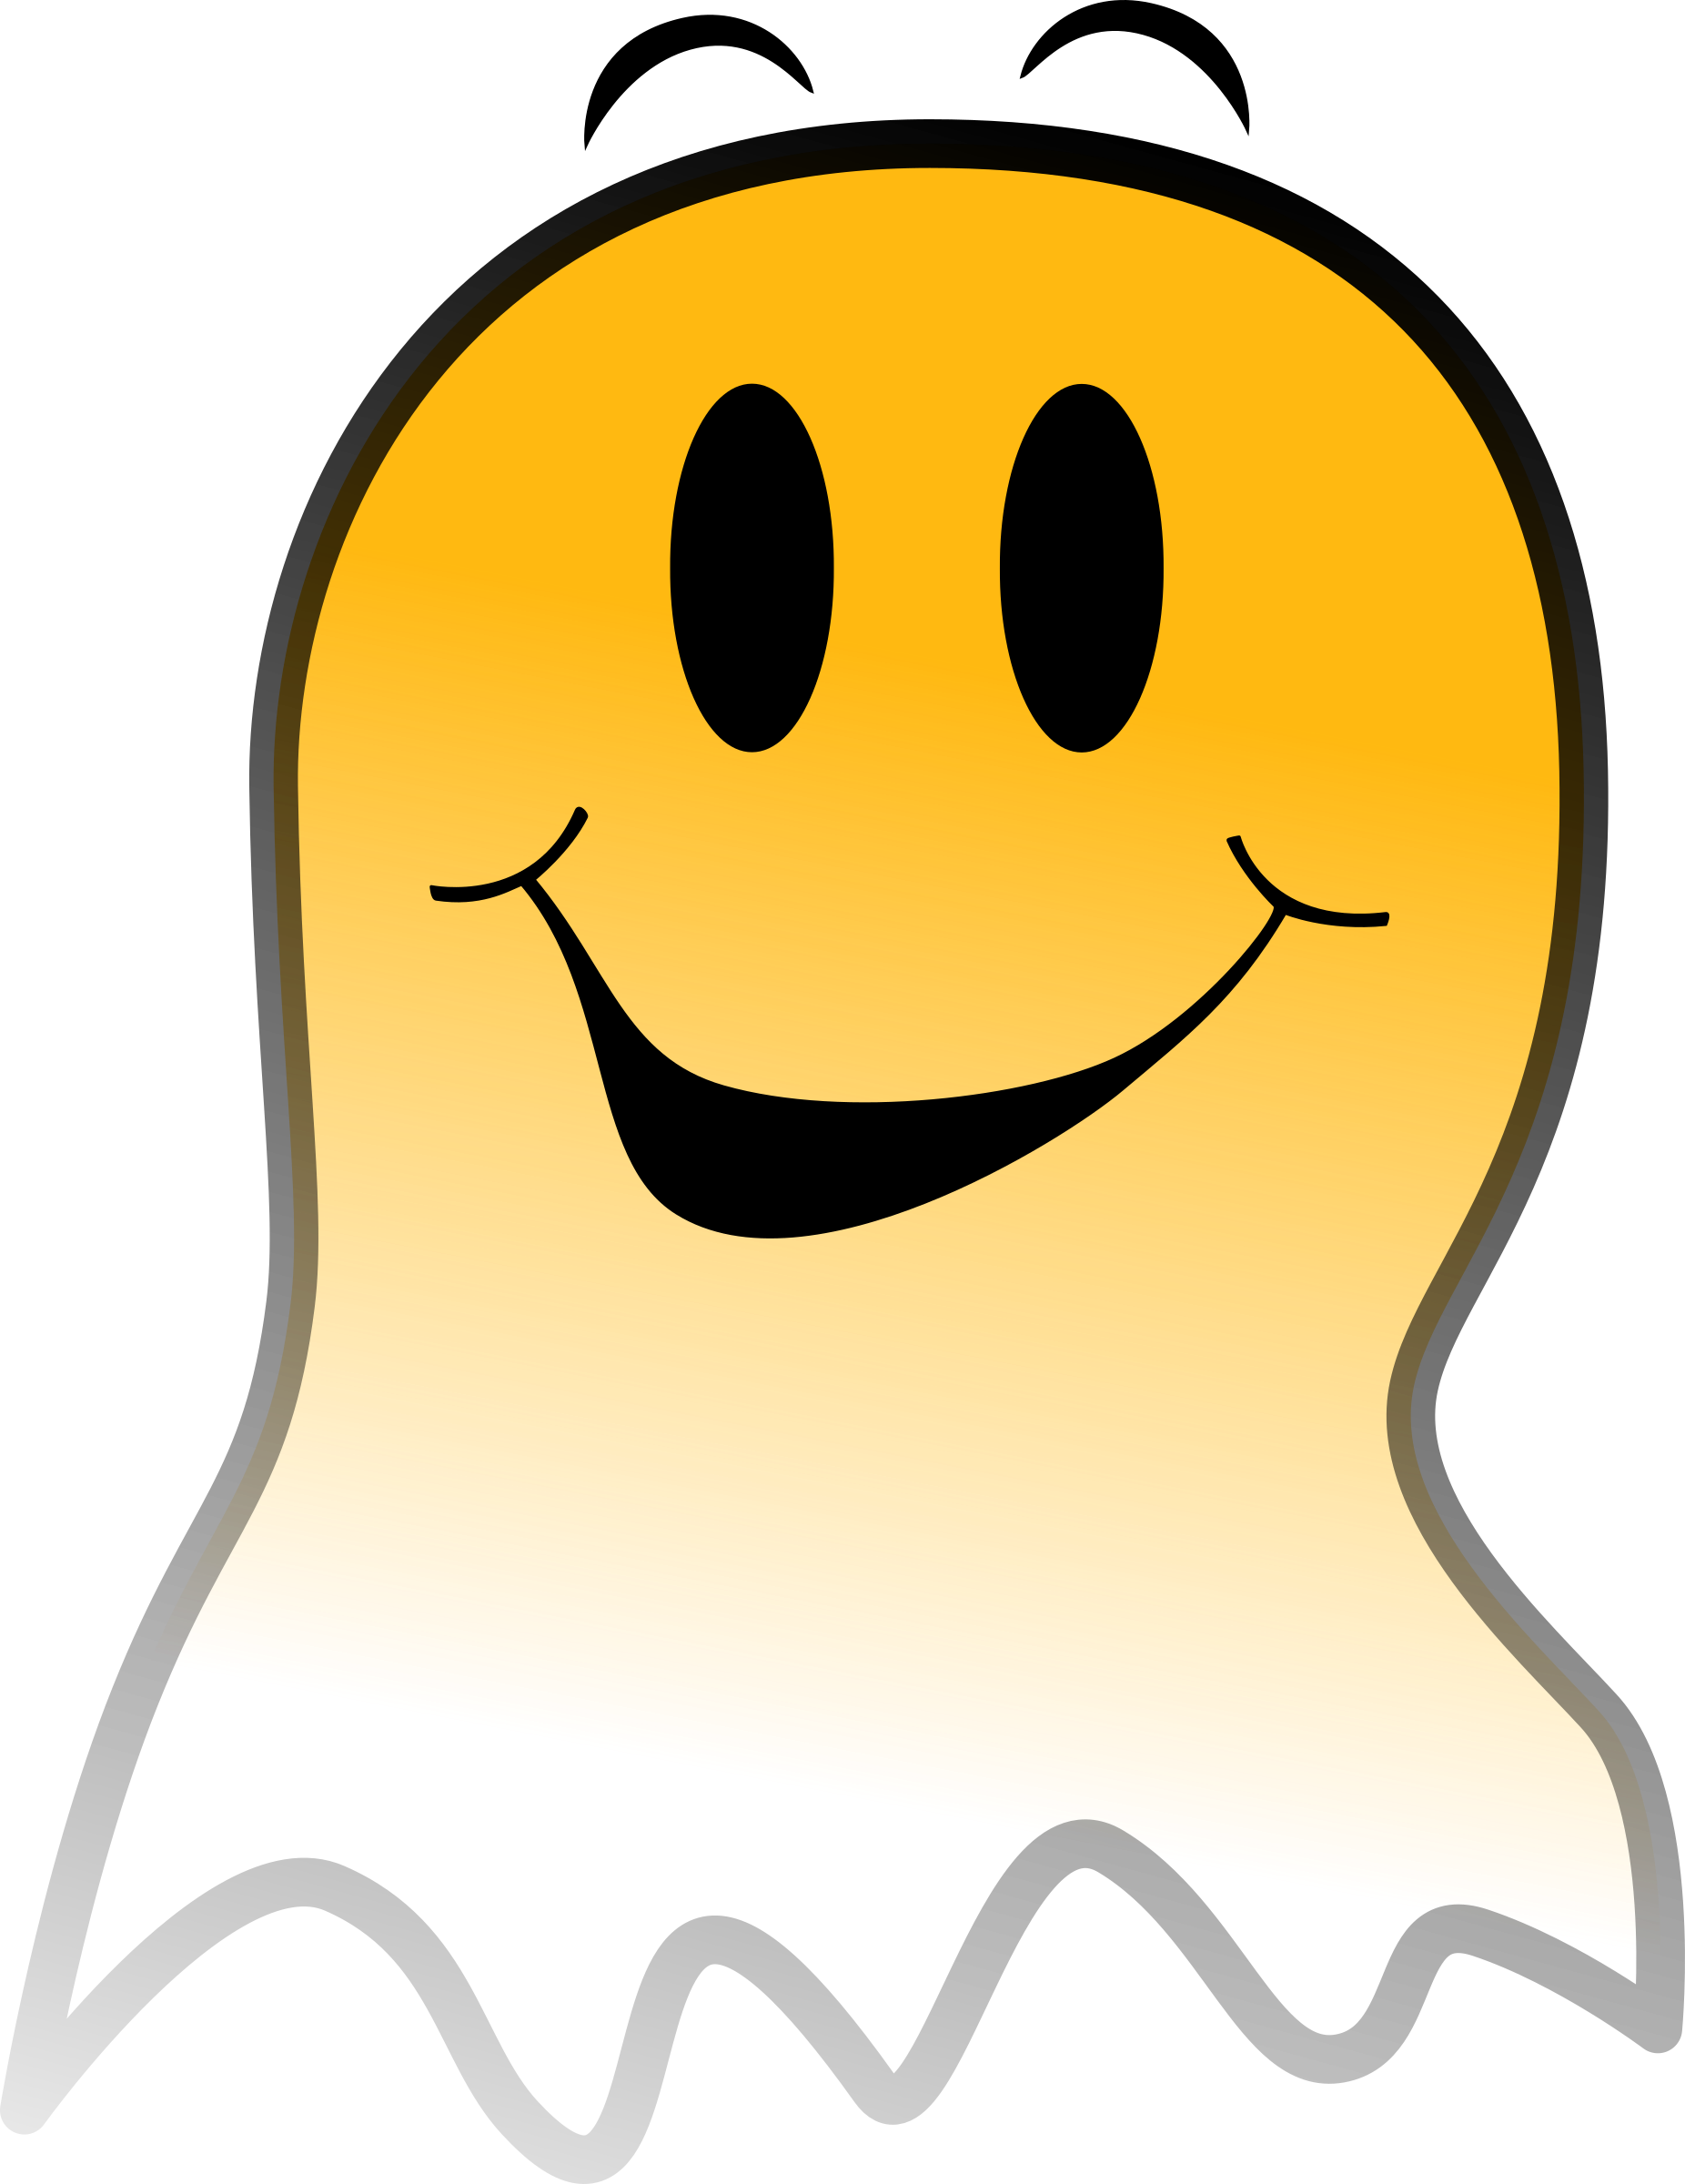 Ghost clipart vector. Smiley big image png